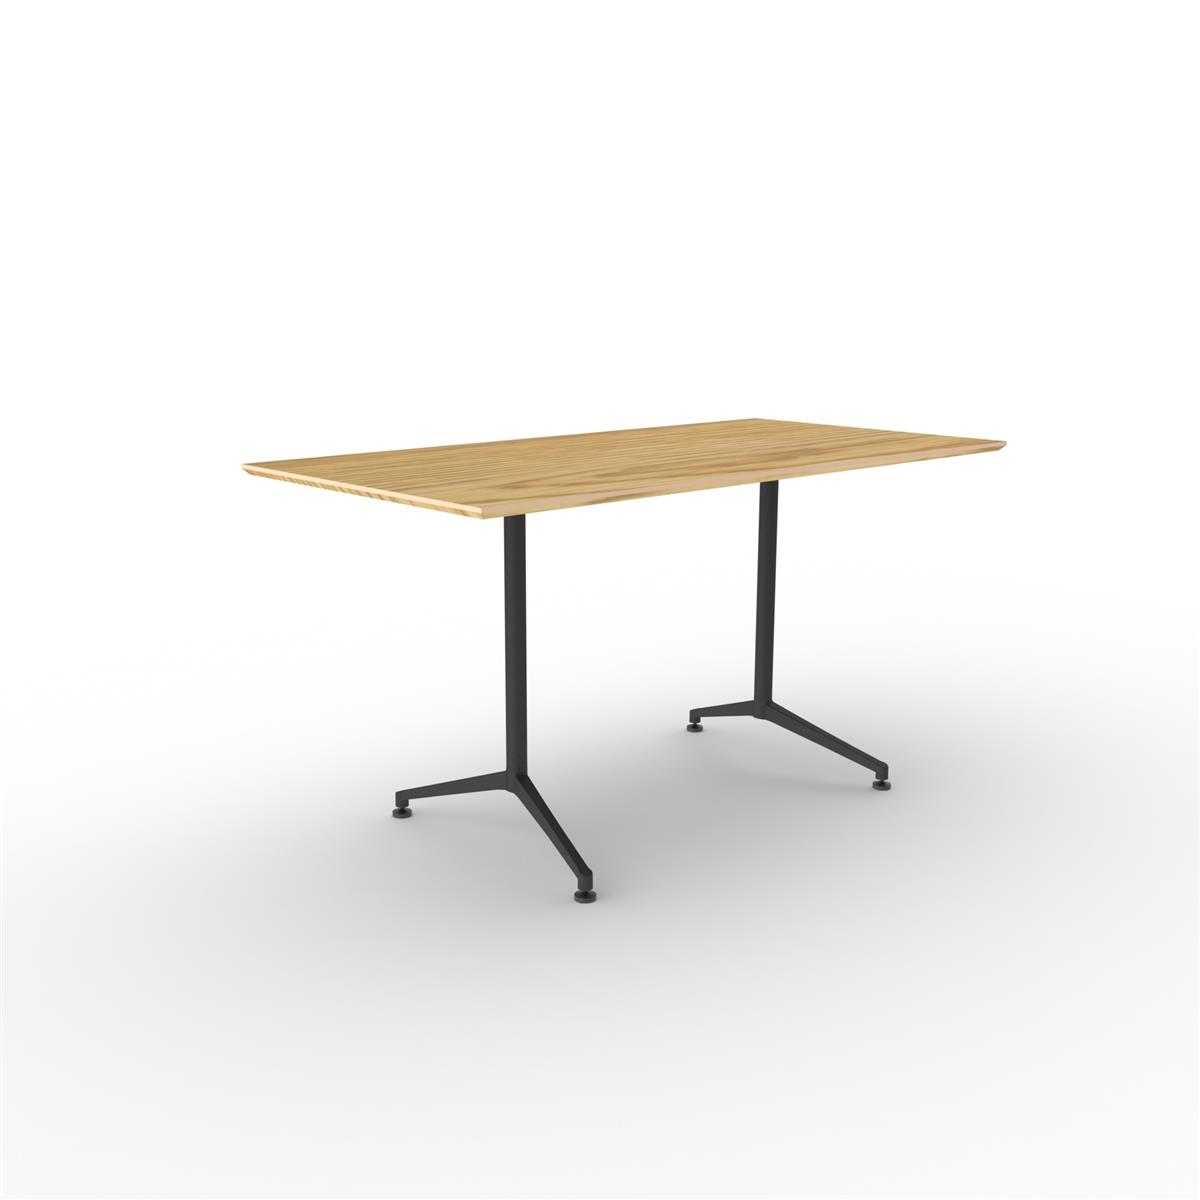 X1 Seamless Table 180x90 - eik finér & sort ramme